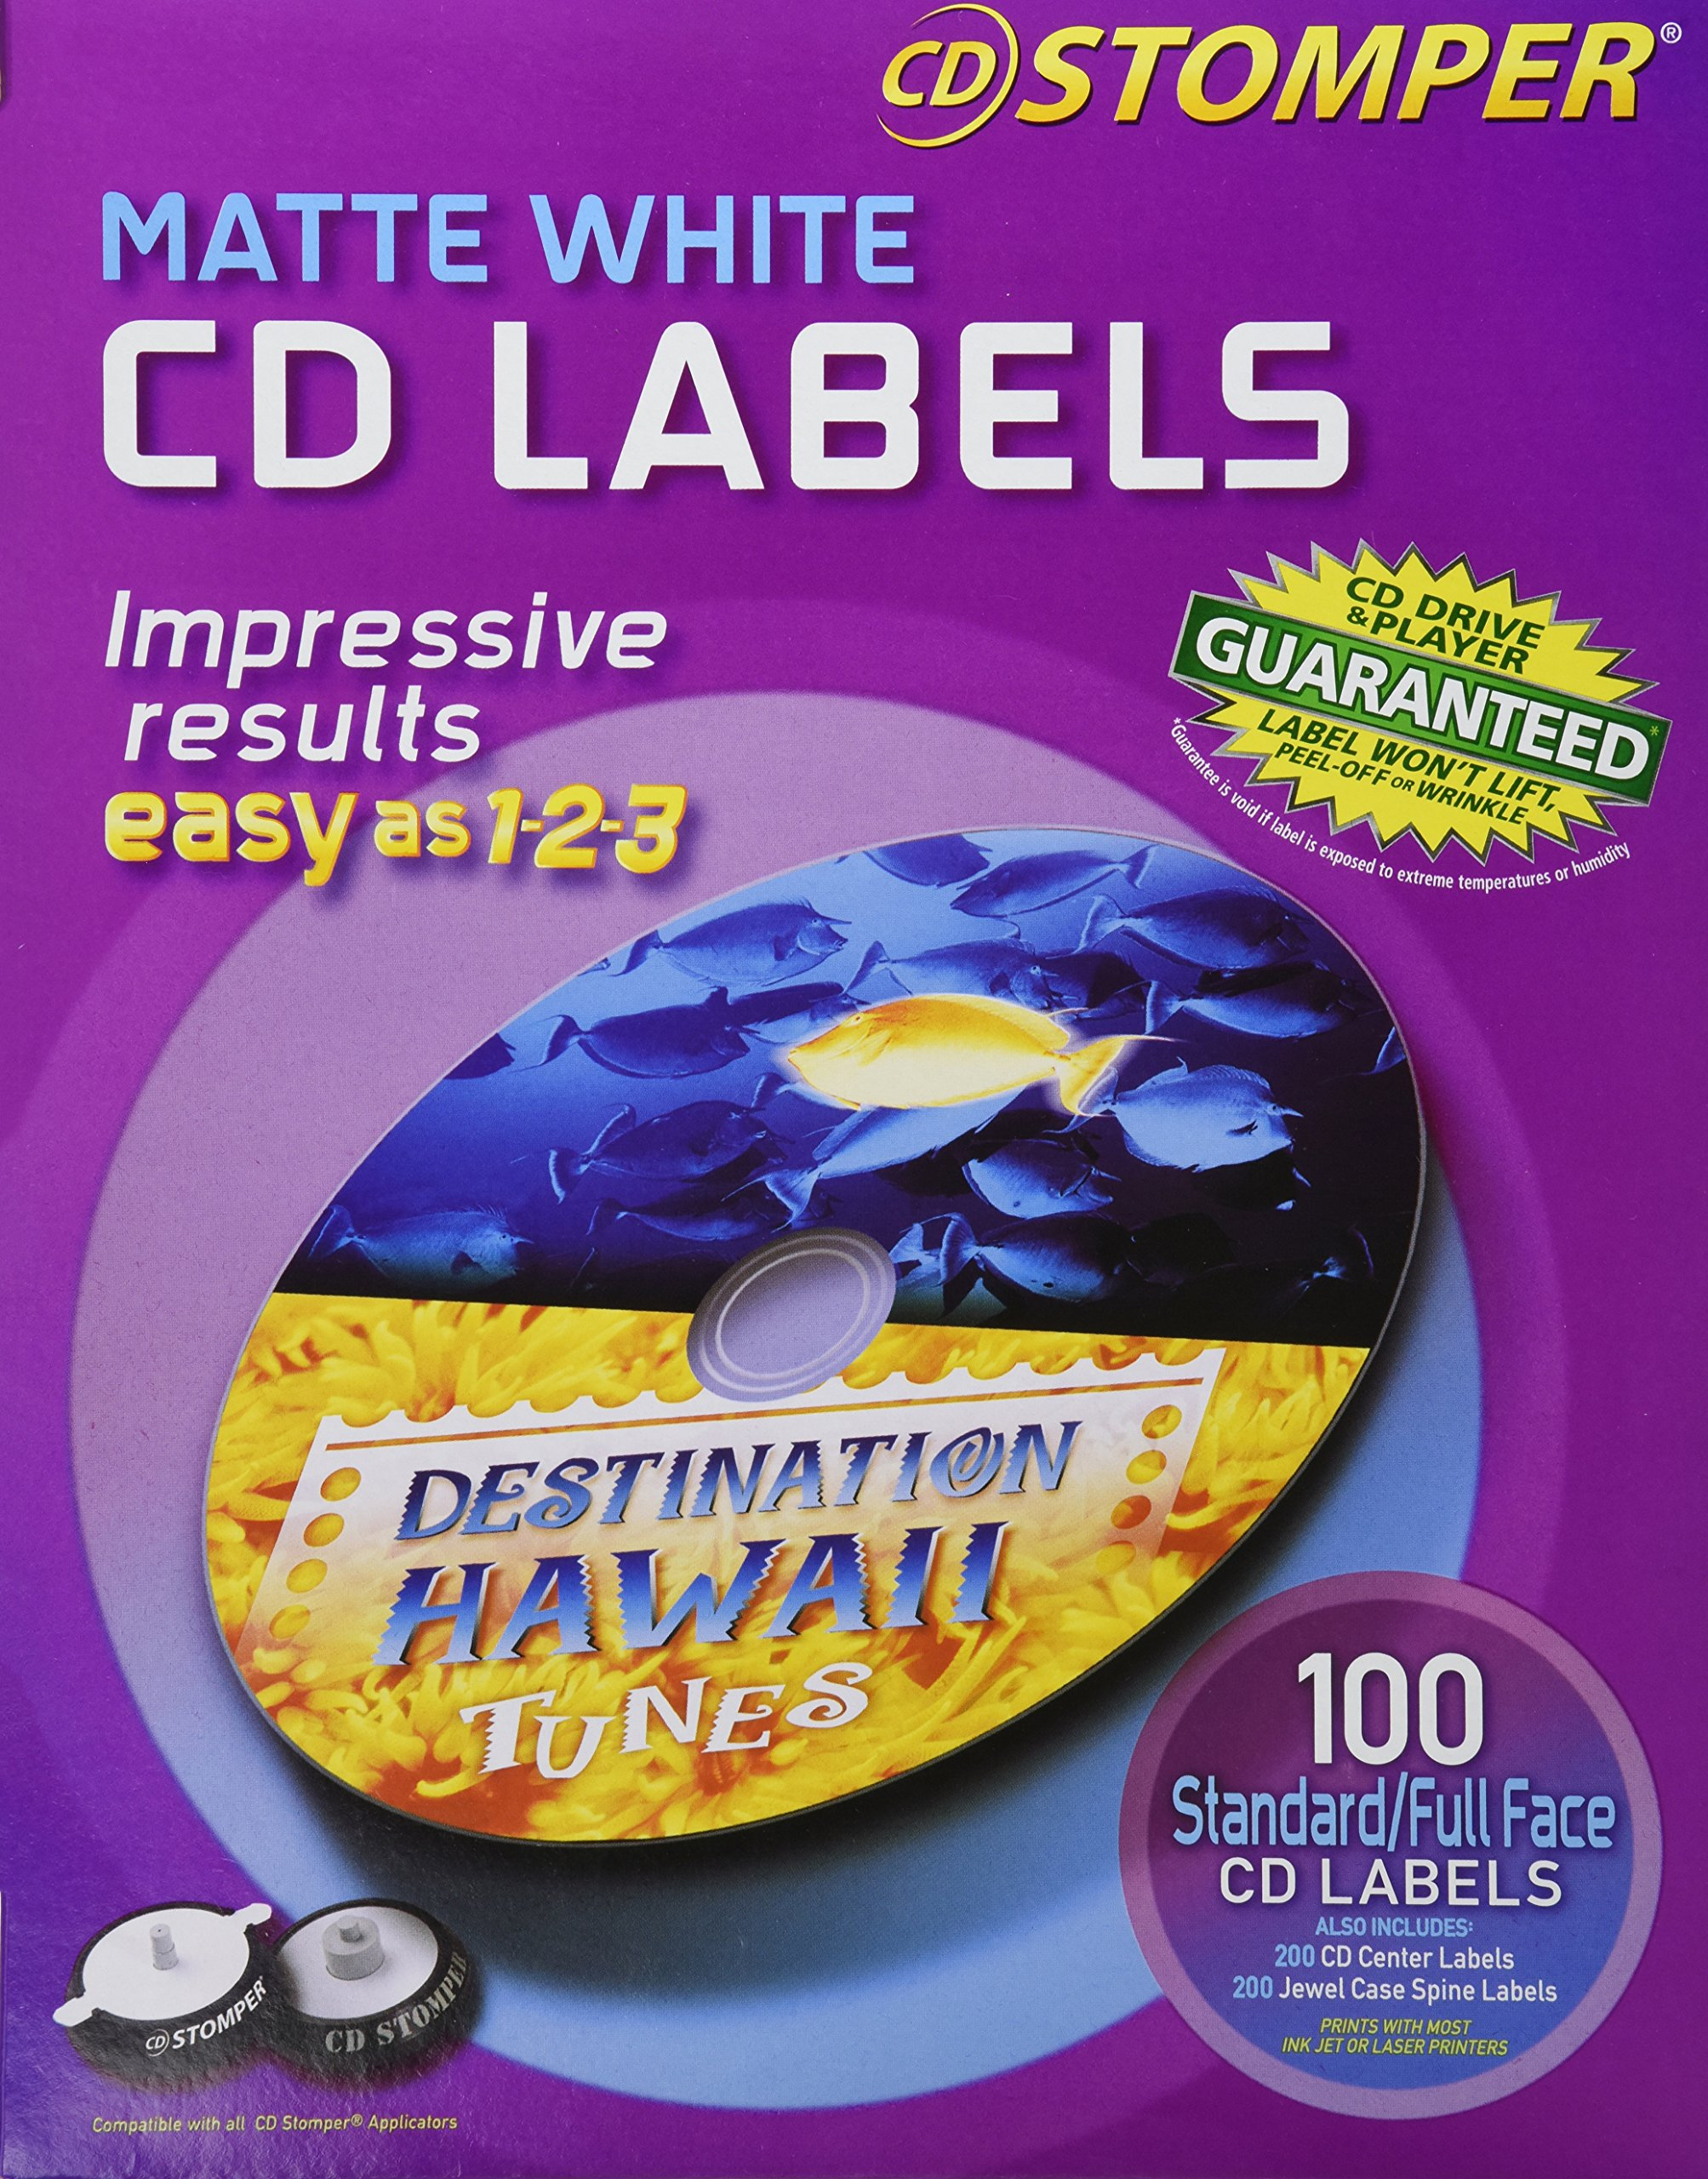 Avery 100-labels 98102 Matte White CDlabels for cd Stomper Pro by AVERY